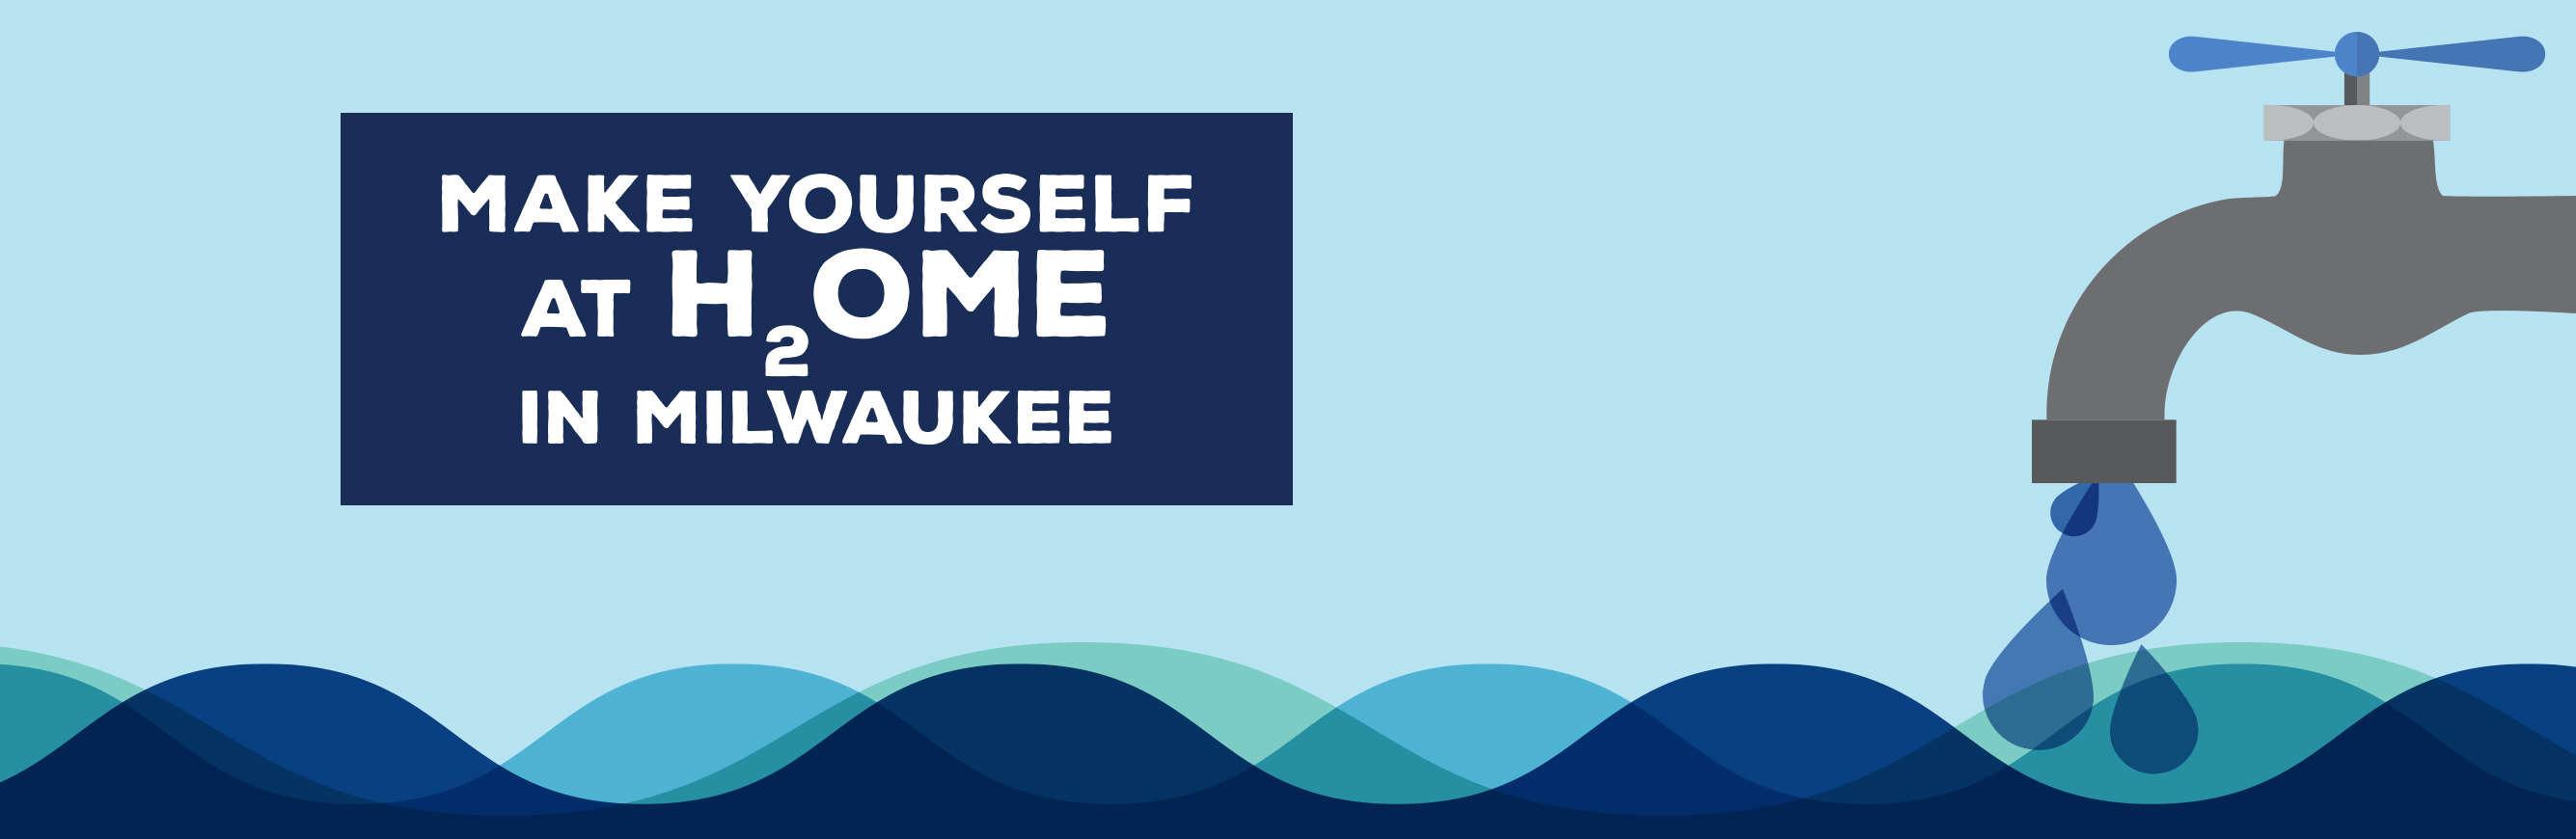 Make Yourself at H20me in Milwaukee